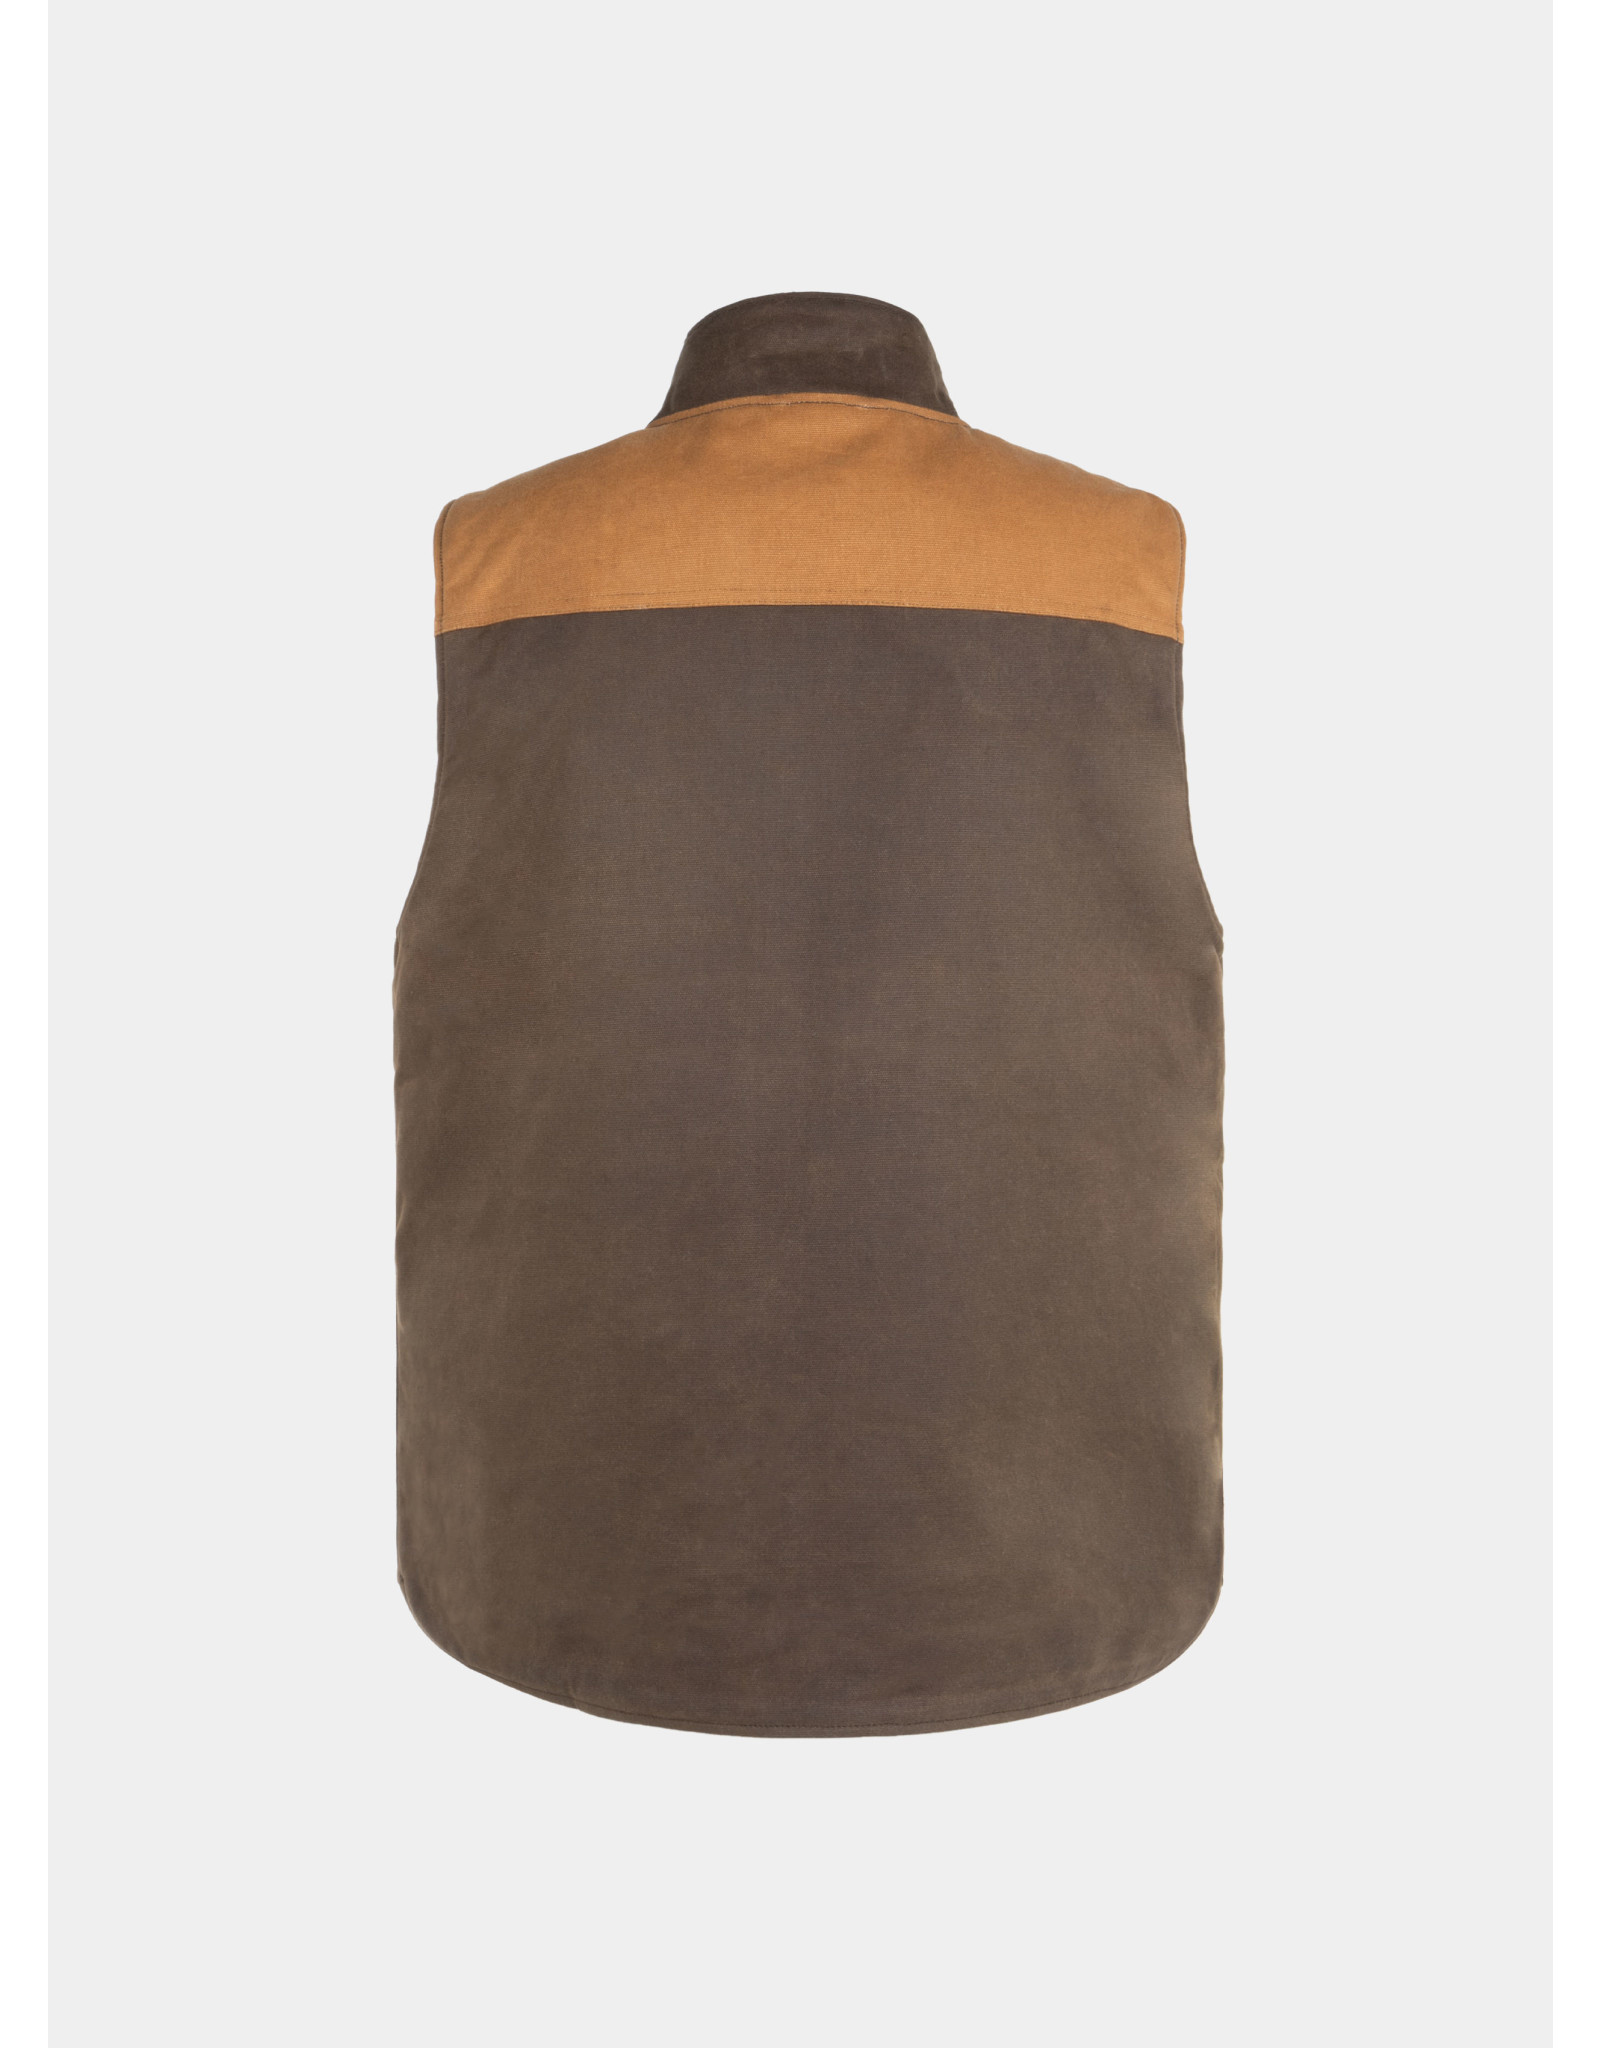 Growers&co Moskvich work vest